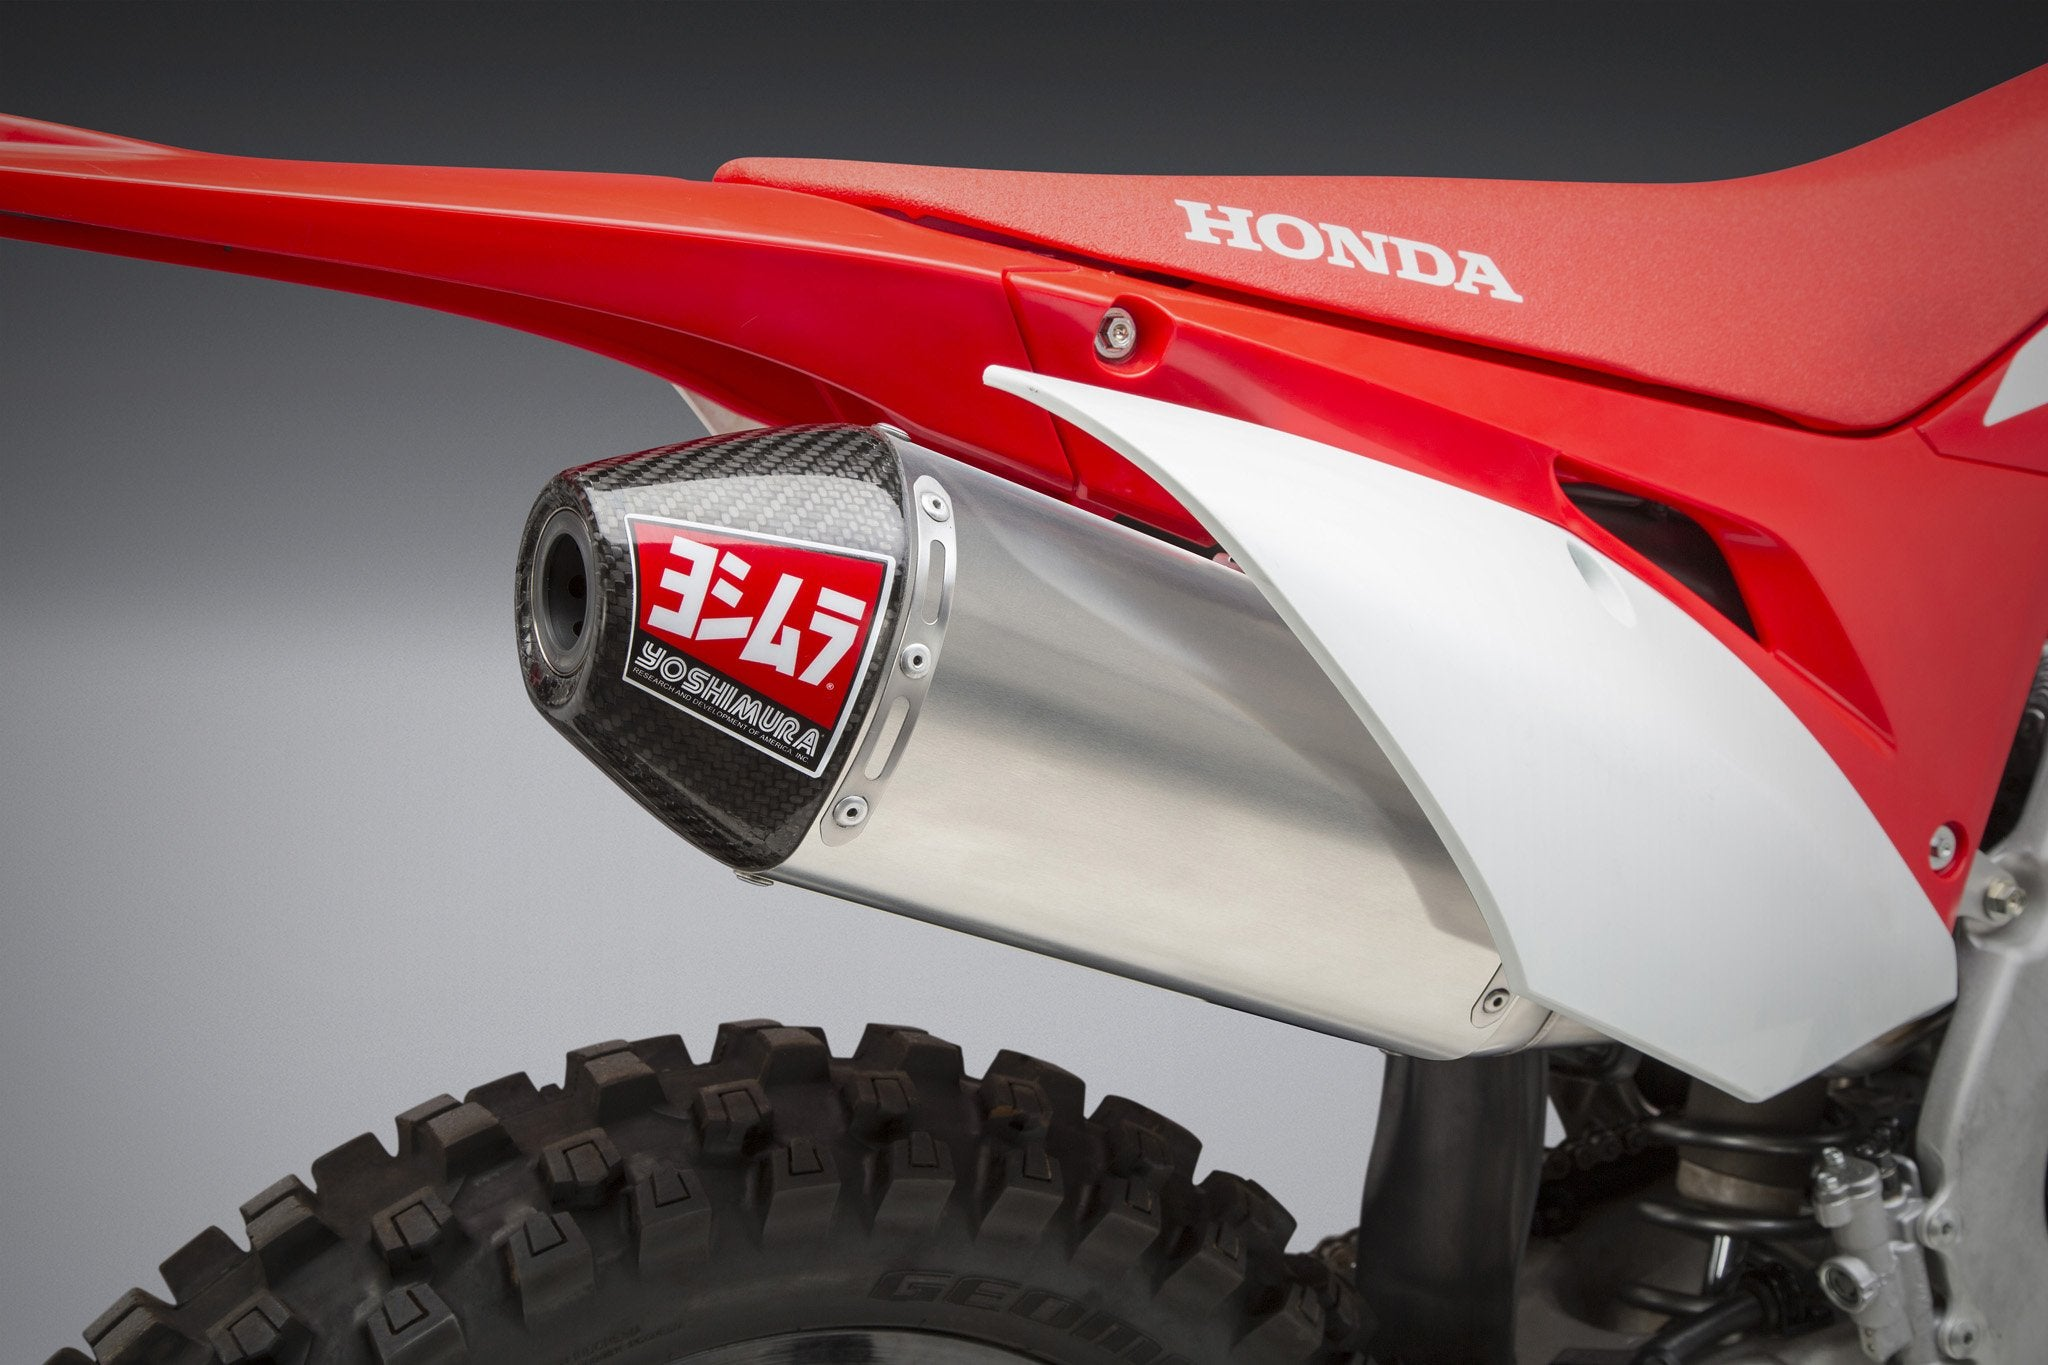 Yoshimura RS-4 Enduro Exhaust System